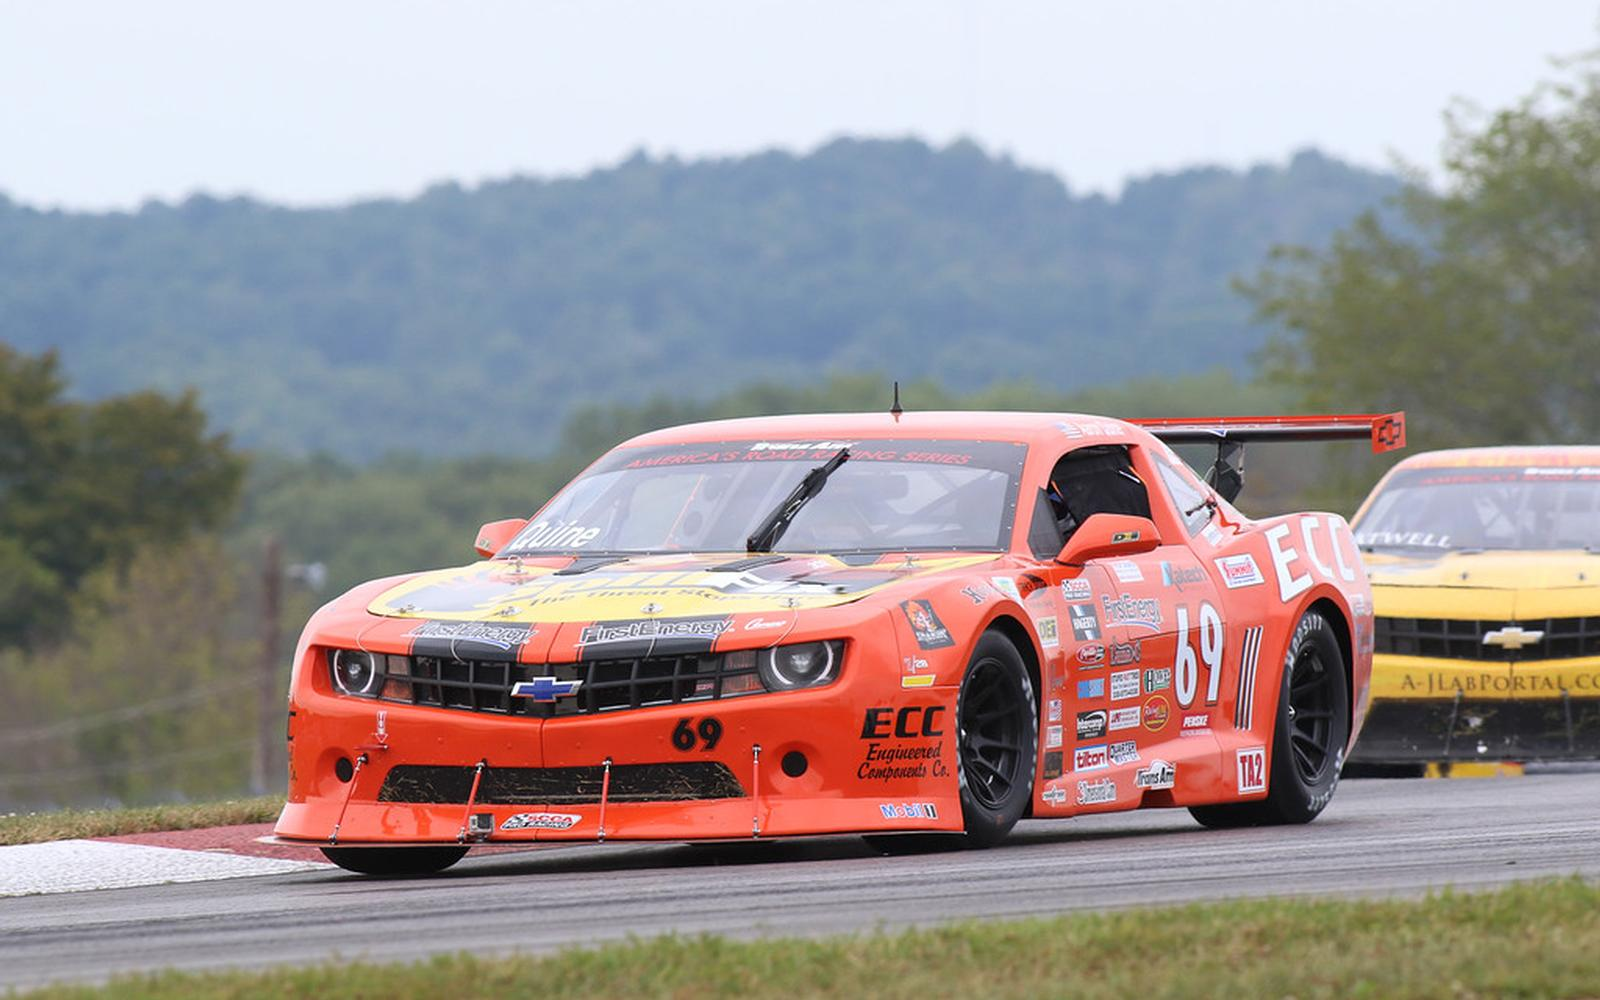 Quine Racing Finishes 11th at Mid-Ohio